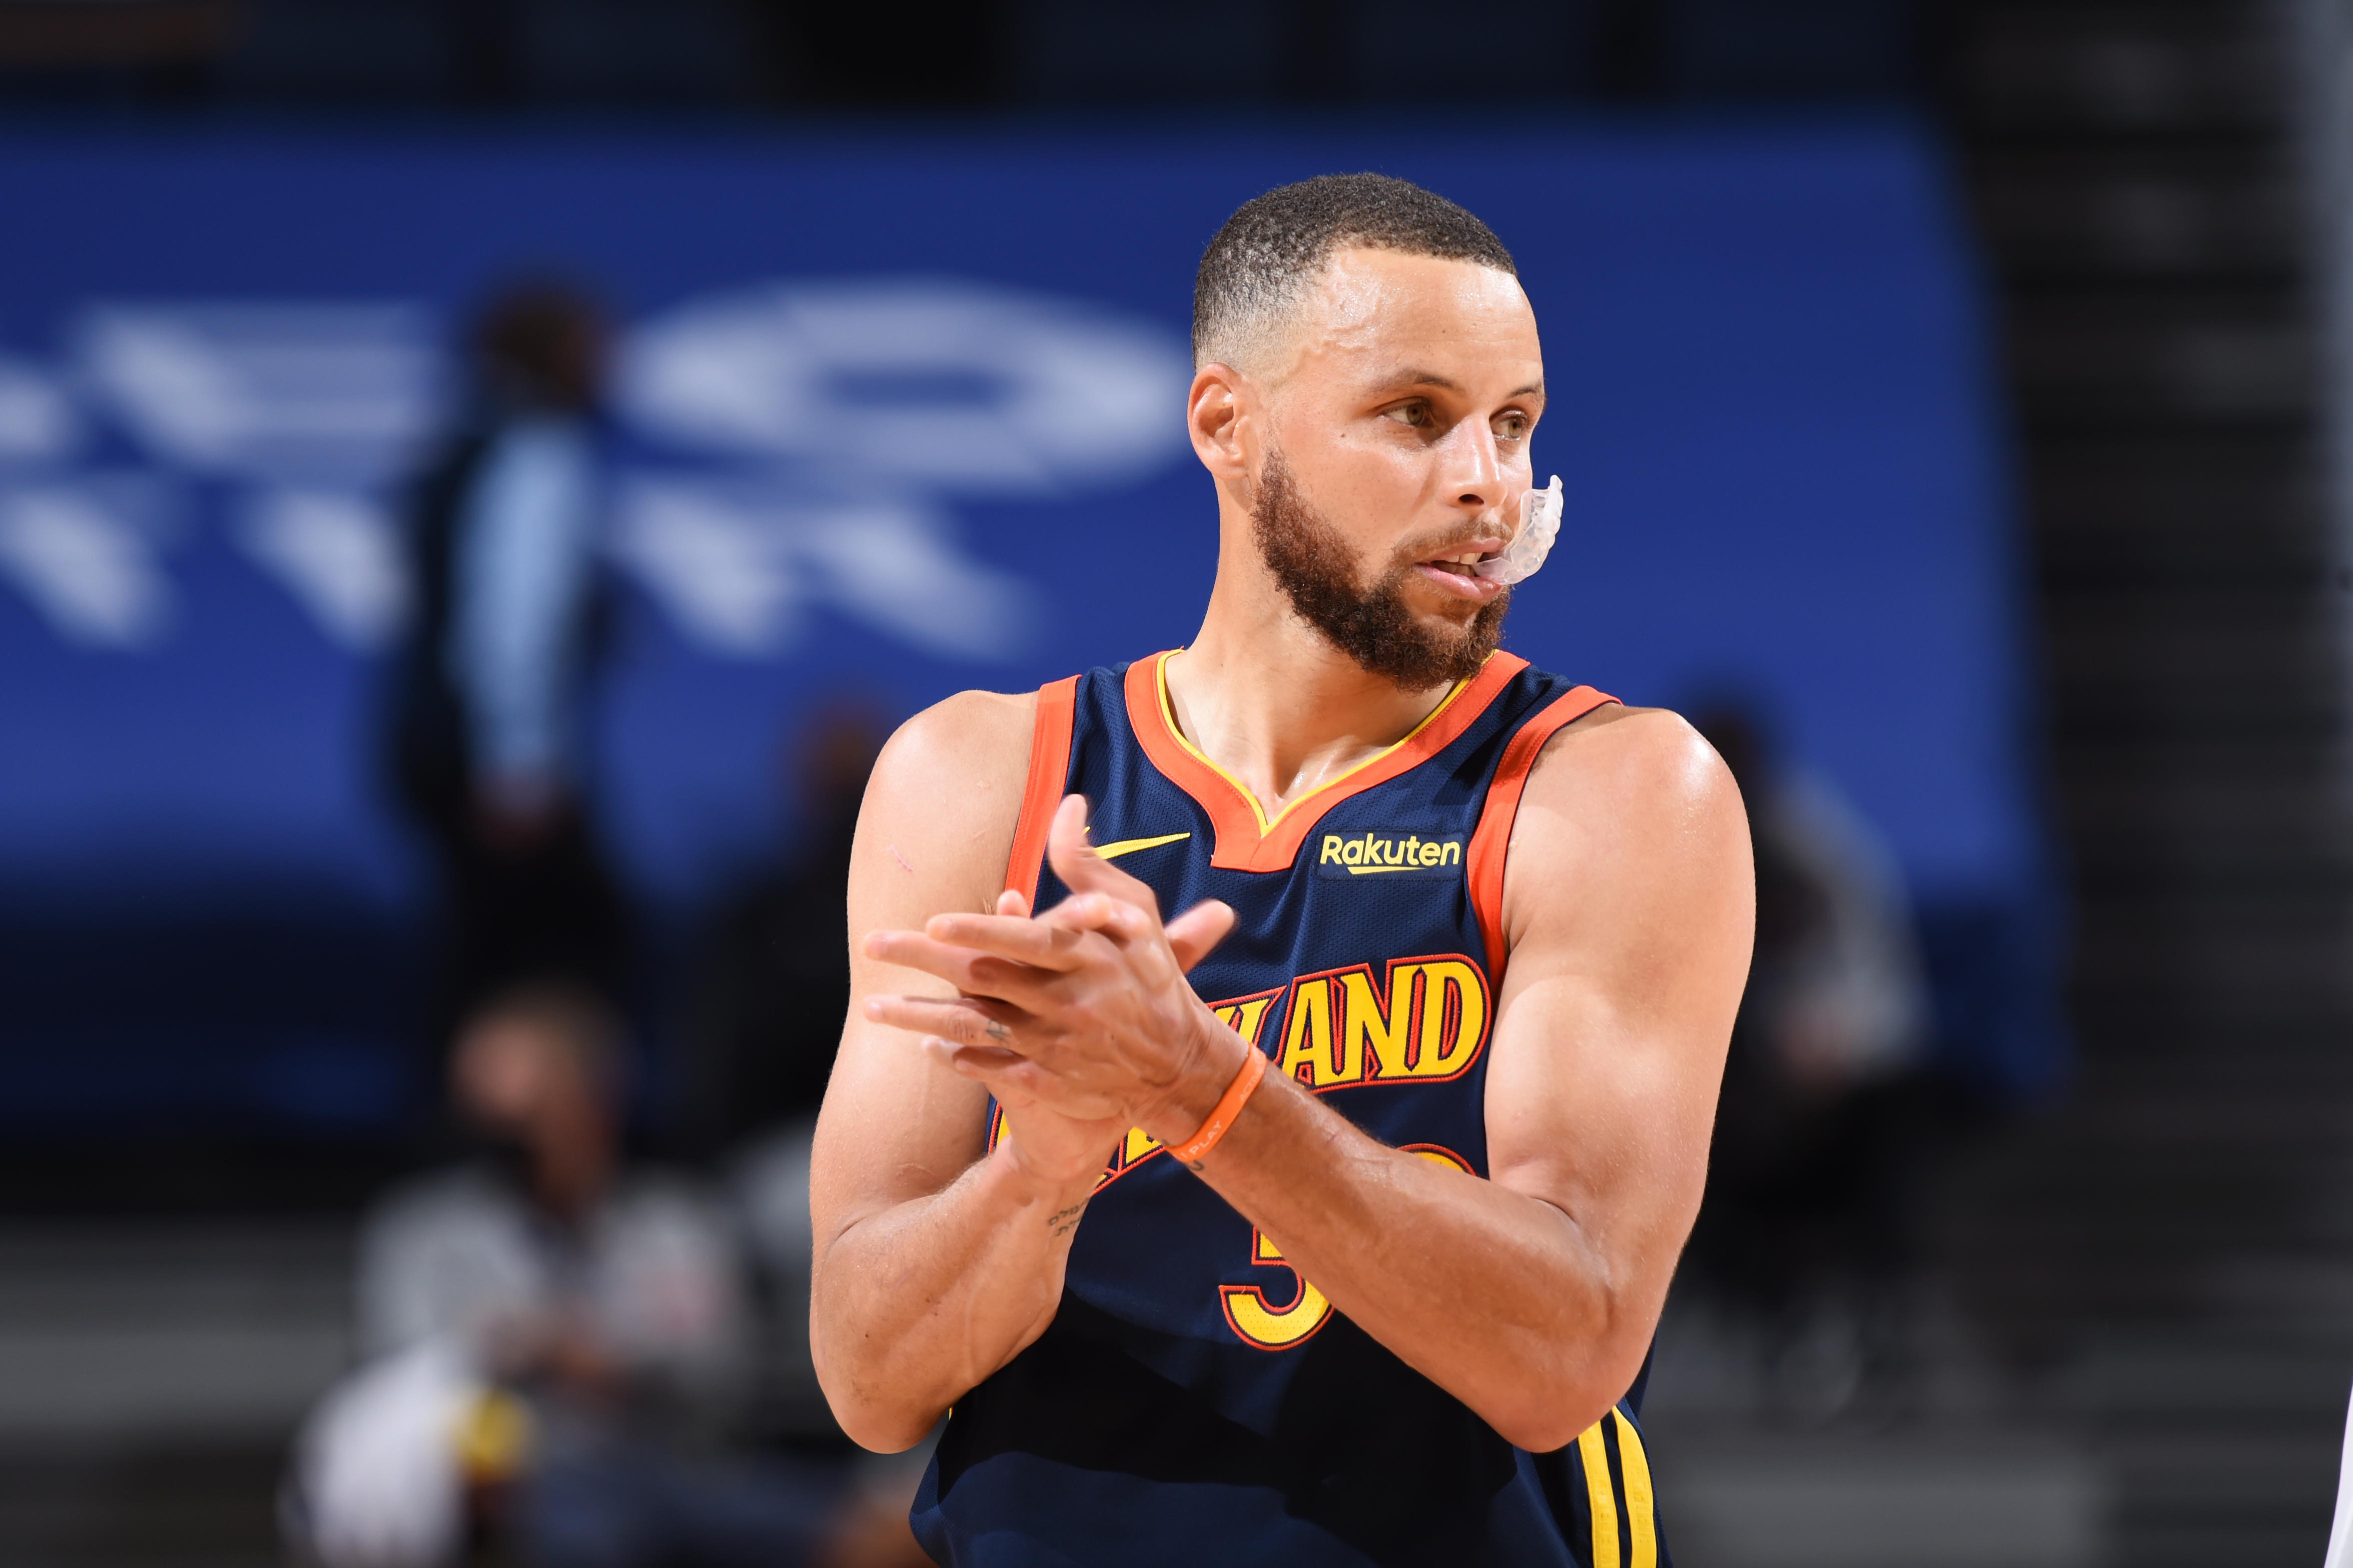 Stephen Curry of the Golden State Warriors claps during the game against the Memphis Grizzlies during the 2021 Play-In Tournament on May 21, 2021 at Chase Center in San Francisco, California.